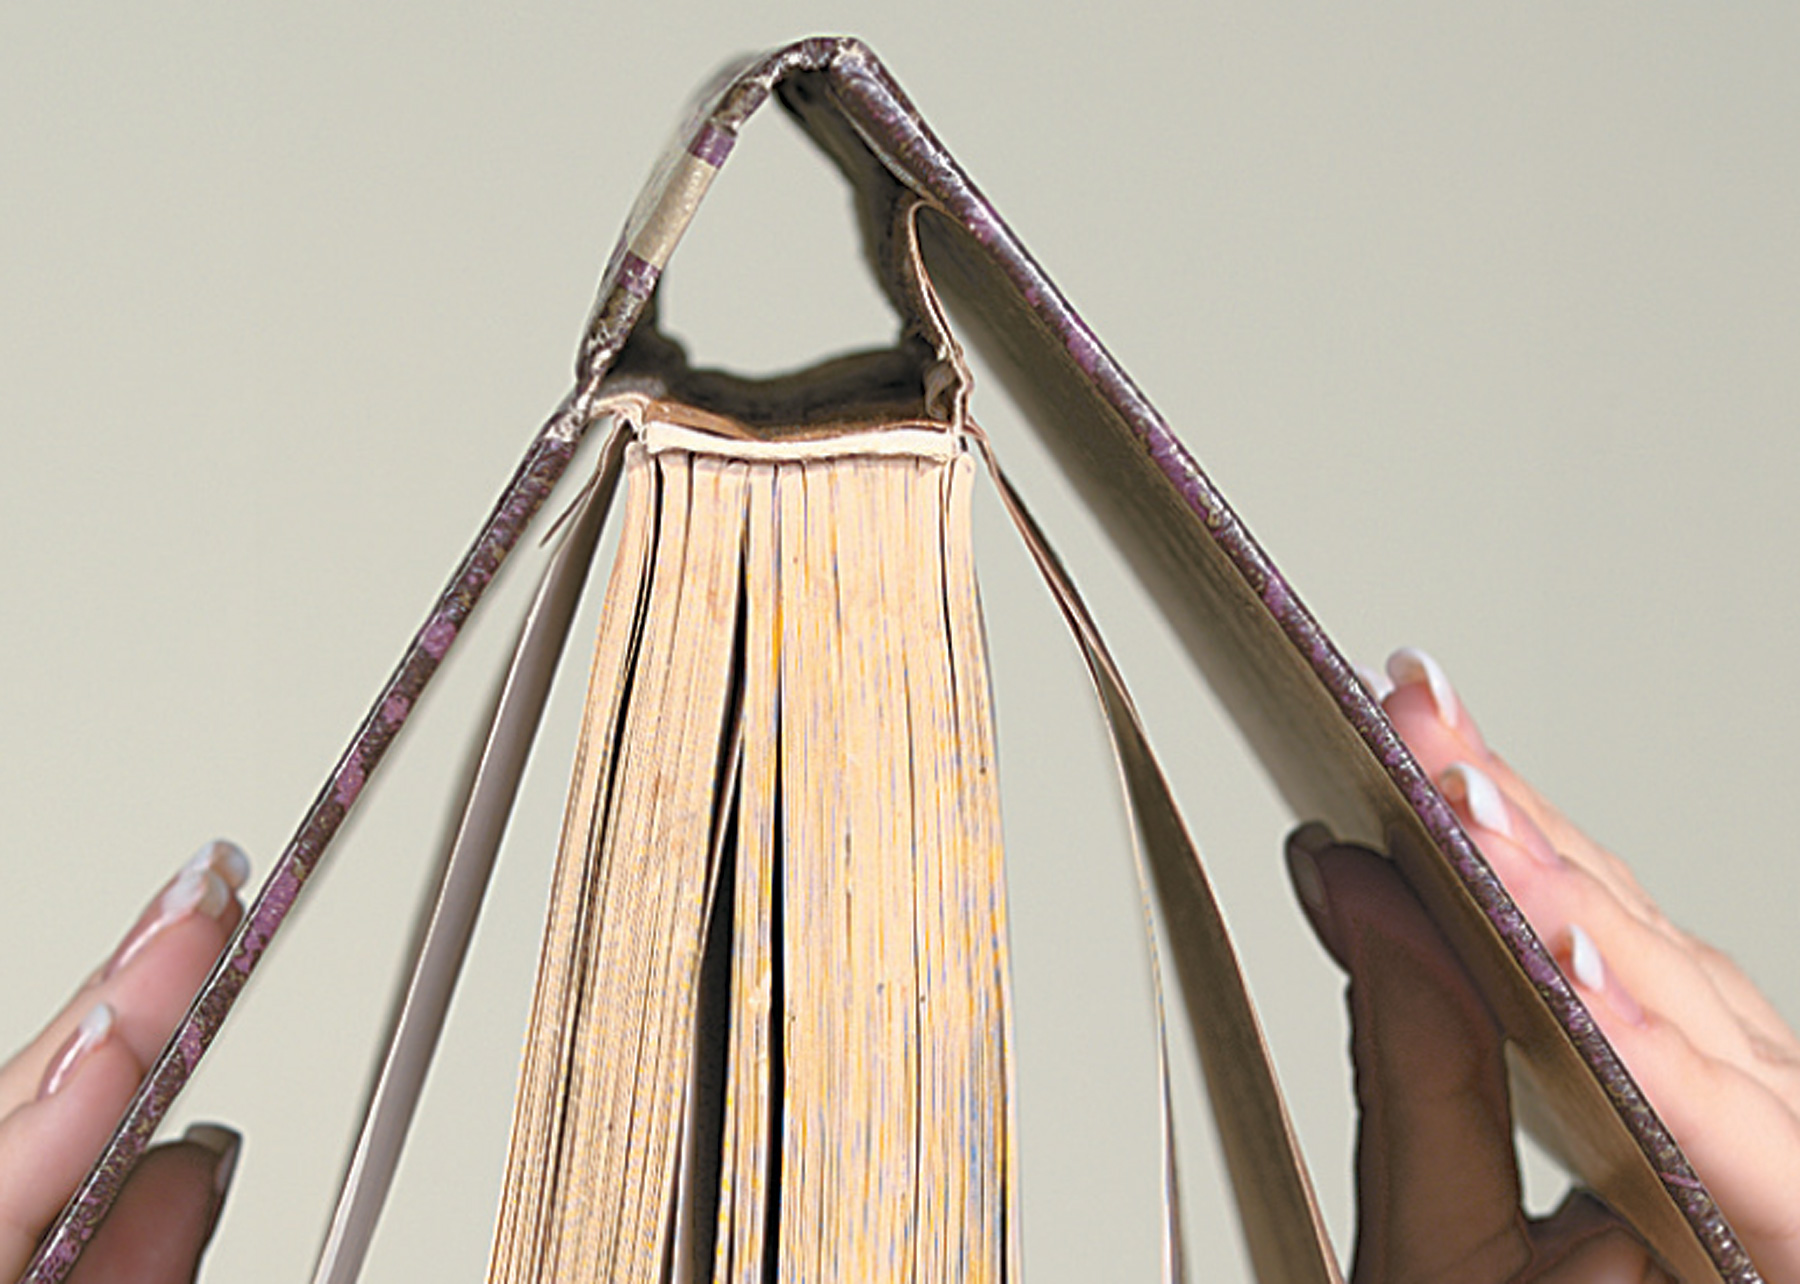 A loose hinge is the first sign of trouble for book binding.